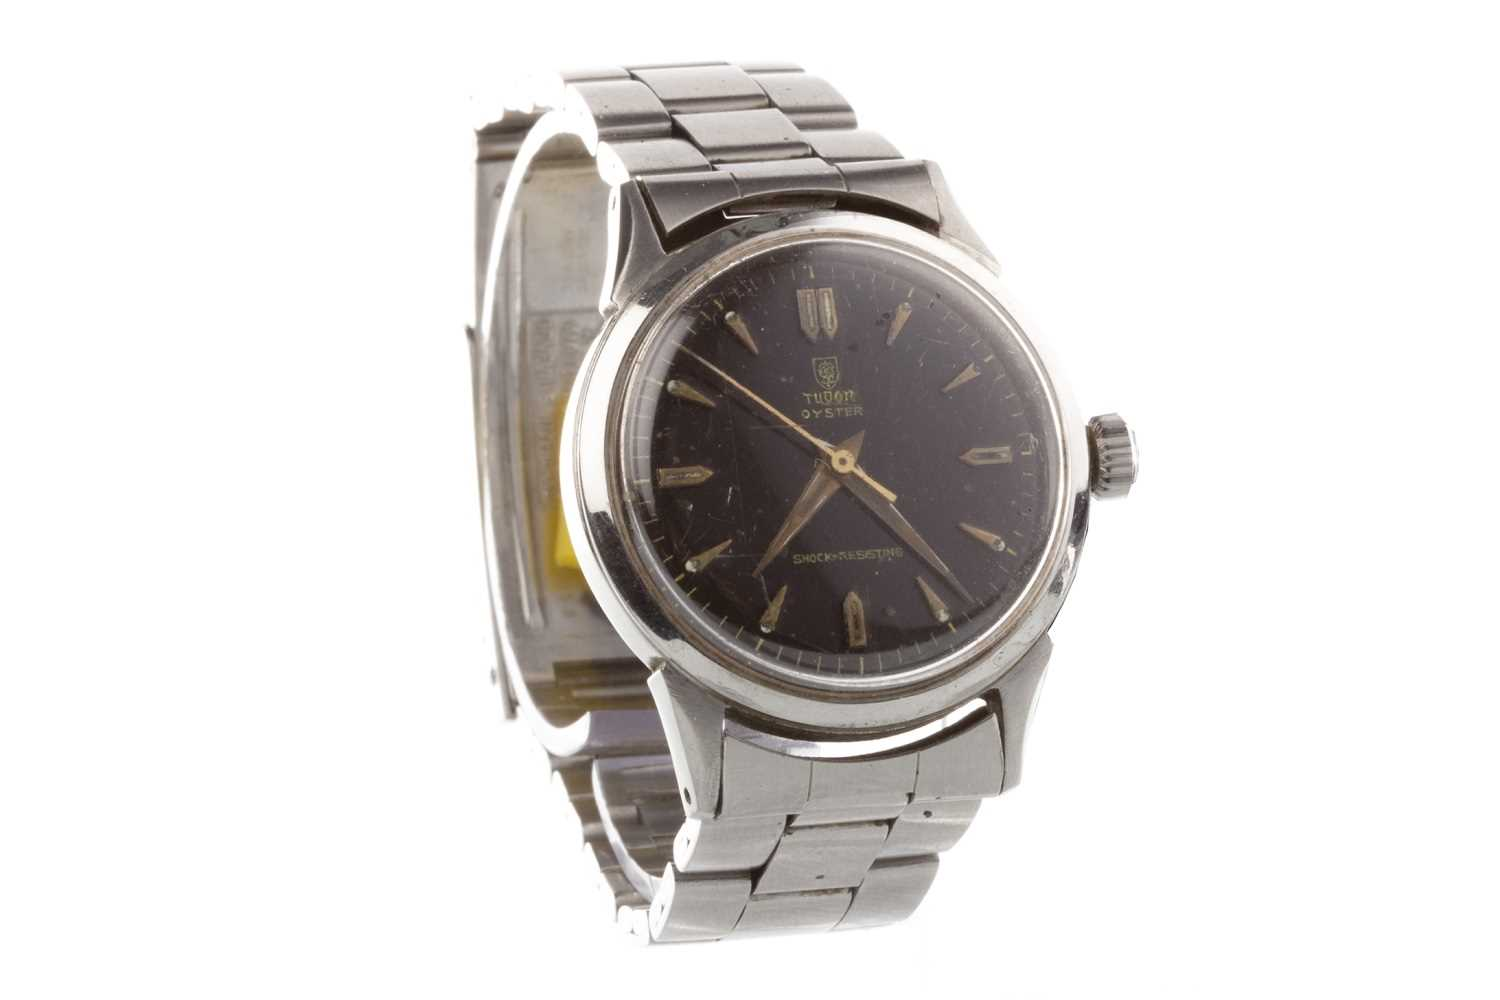 Lot 843-A GENTLEMAN'S TUDOR OYSTER STEEL WRIST WATCH